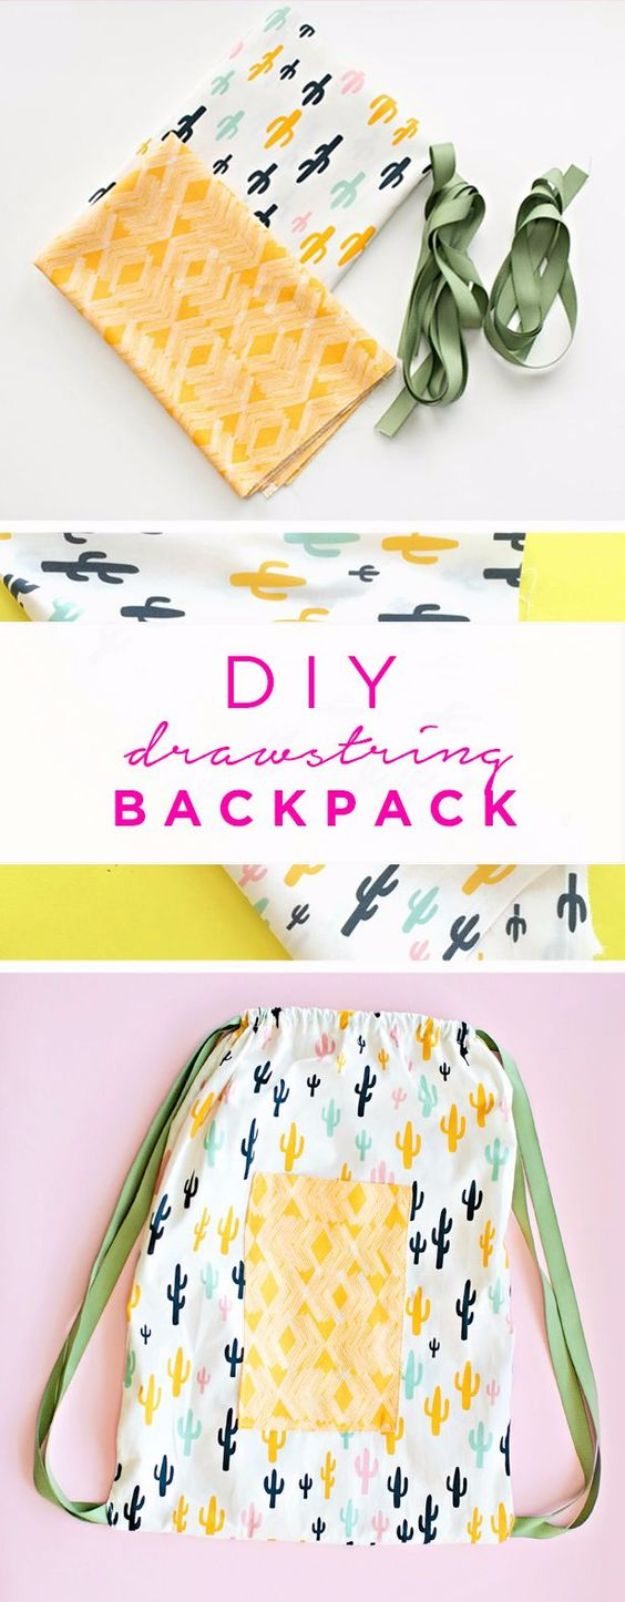 DIY School Supplies - DIY Drawstring Backpack - Easy Crafts and Do It Yourself Ideas for Back To School - Pencils, Notebooks, Backpacks and Fun Gear for Going Back To Class - Creative DIY Projects for Cheap School Supplies - Cute Crafts for Teens and Kids #backtoschool #teencrafts #kidscrafts #teen #diyideas #crafts